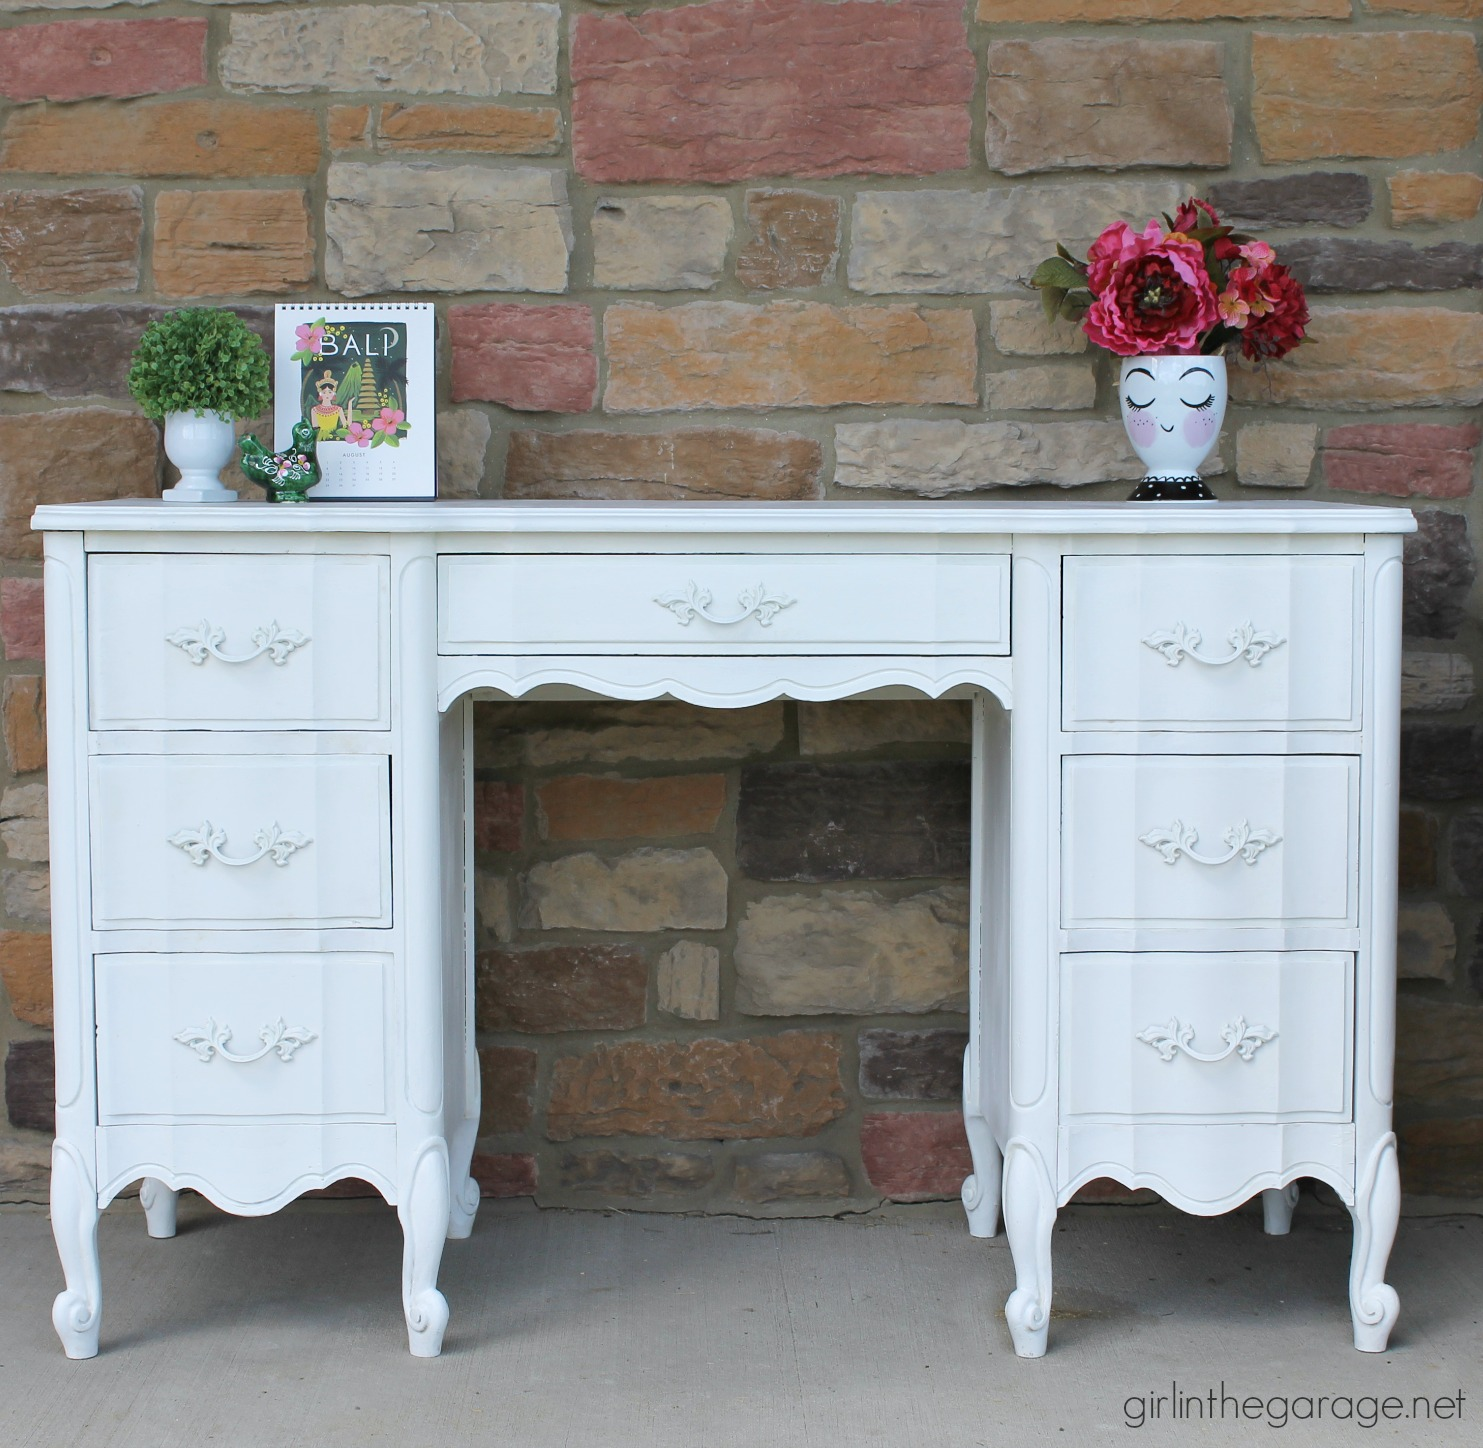 French Provincial Desk Makeover with Pink Drawers - Girl in the Garage